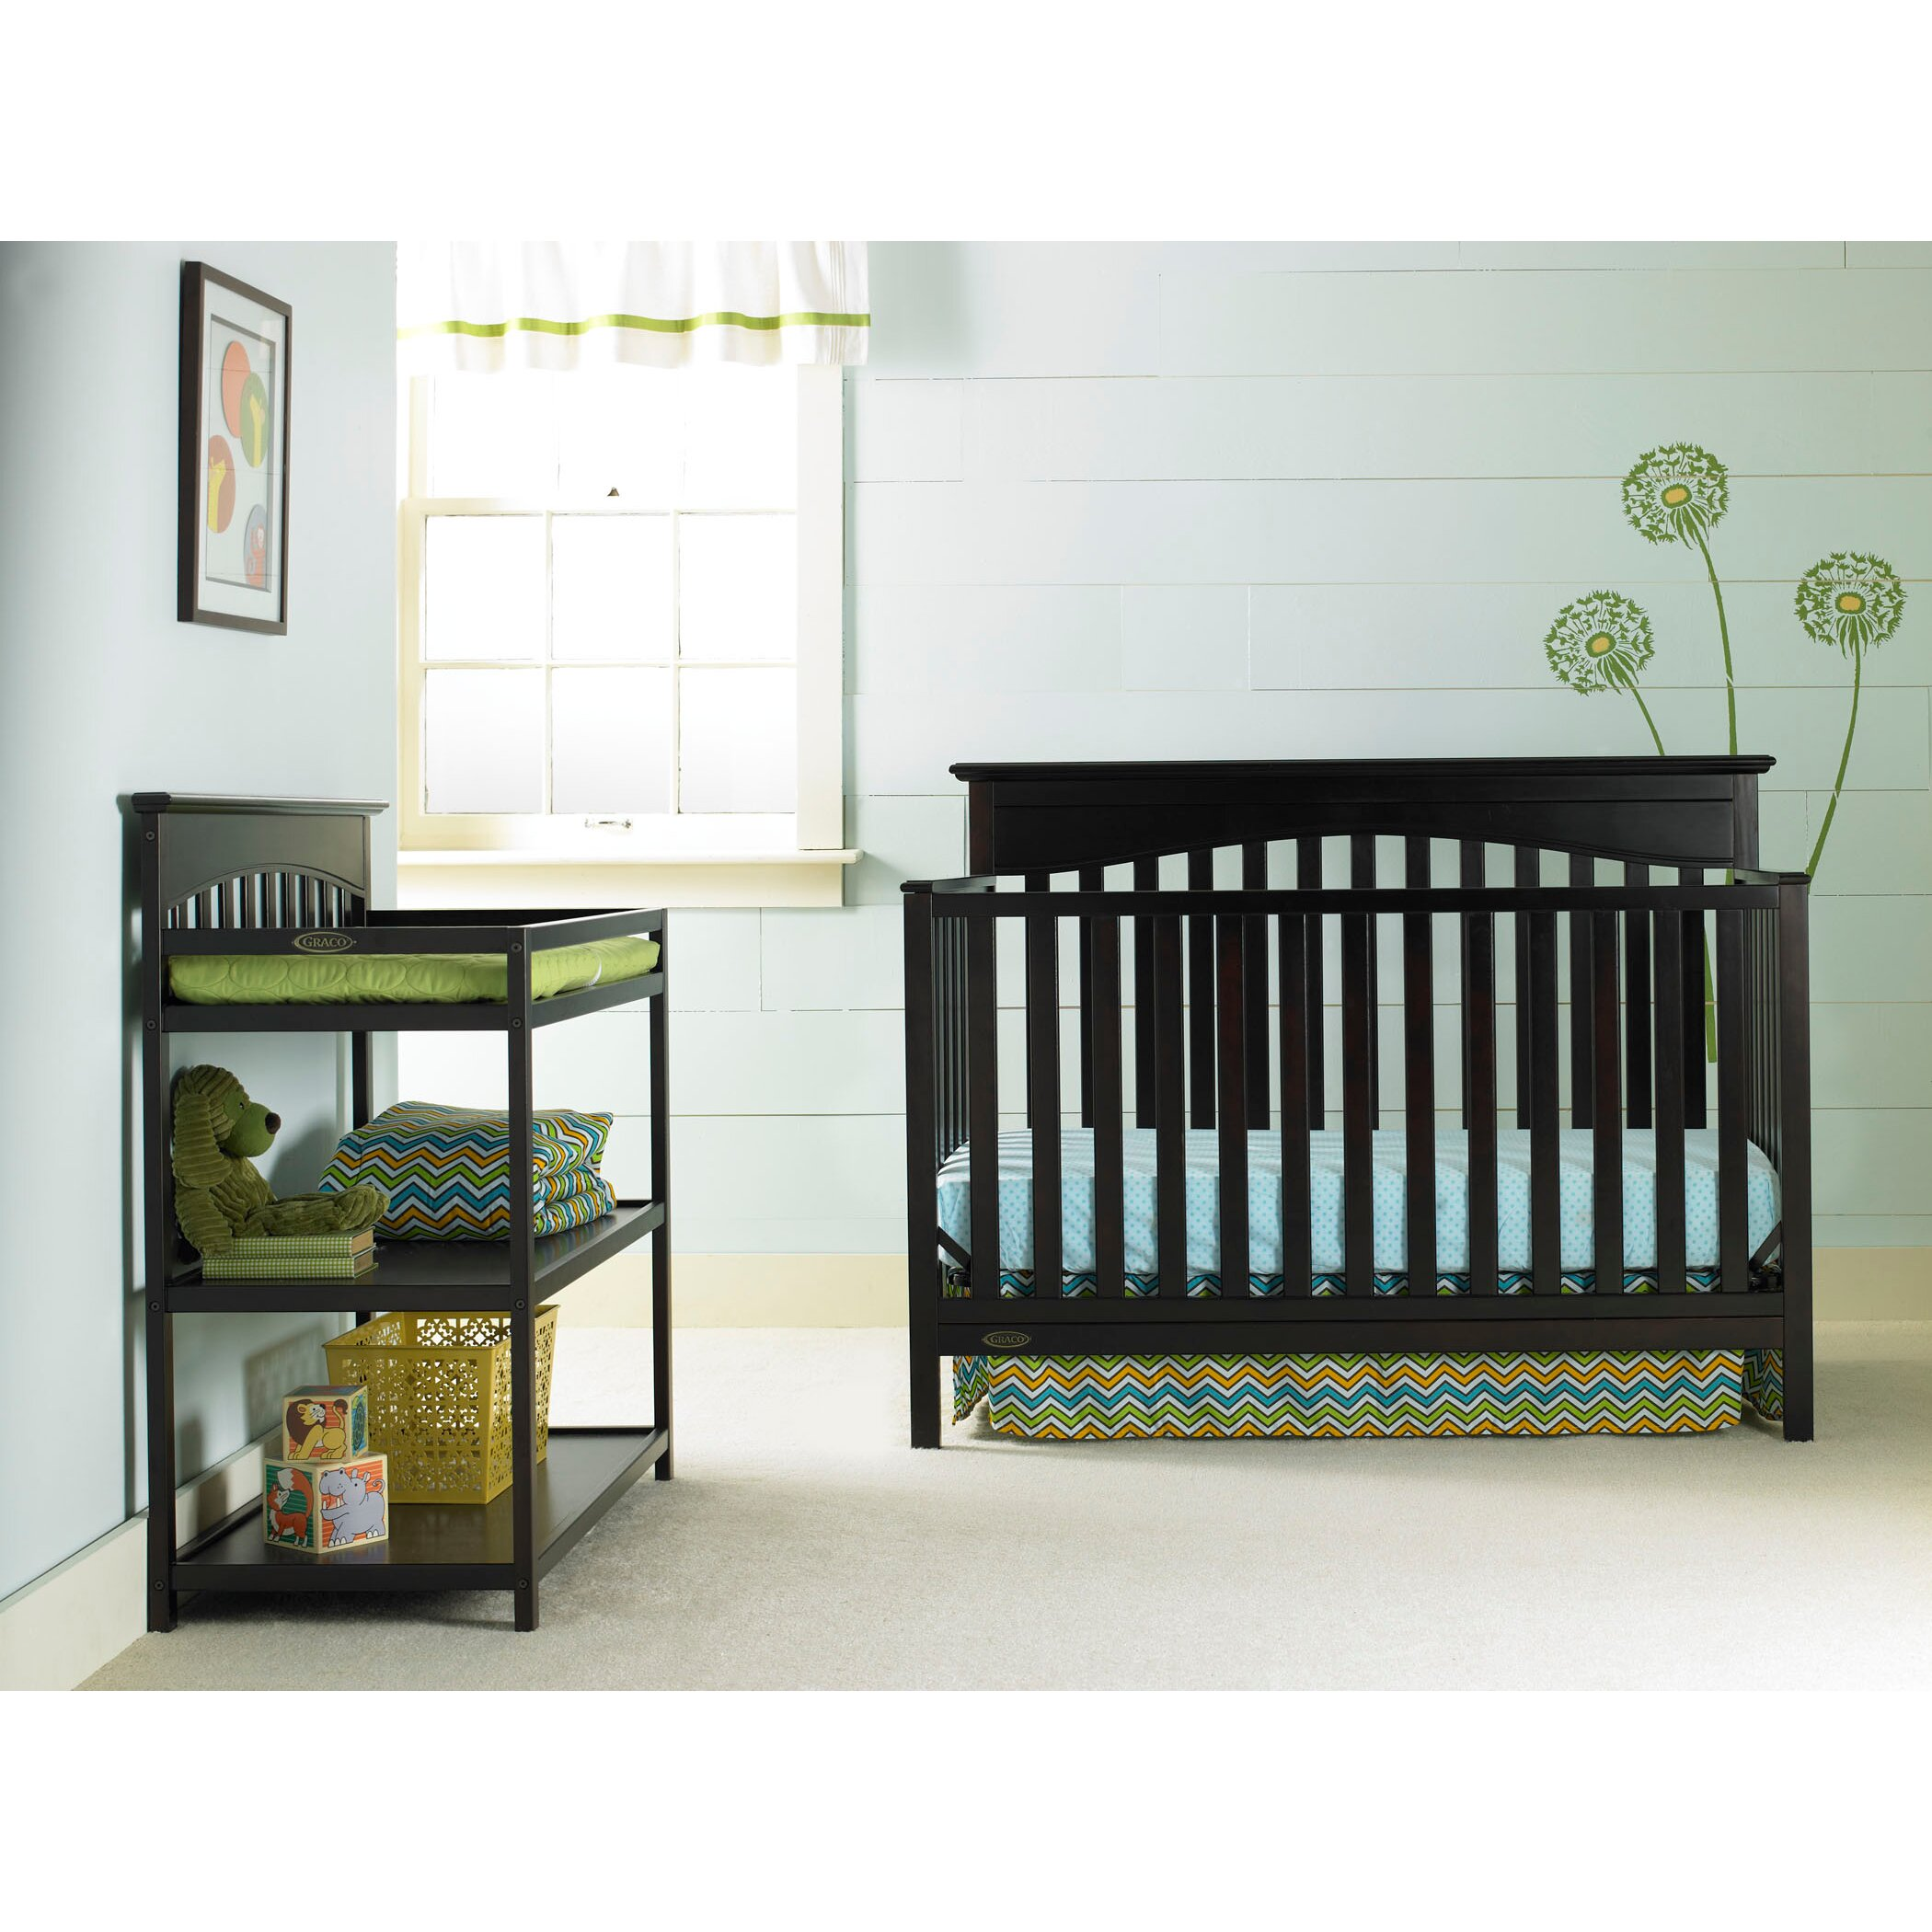 Crib for sale sheffield - Graco Hayden 4 In 1 Convertible Crib